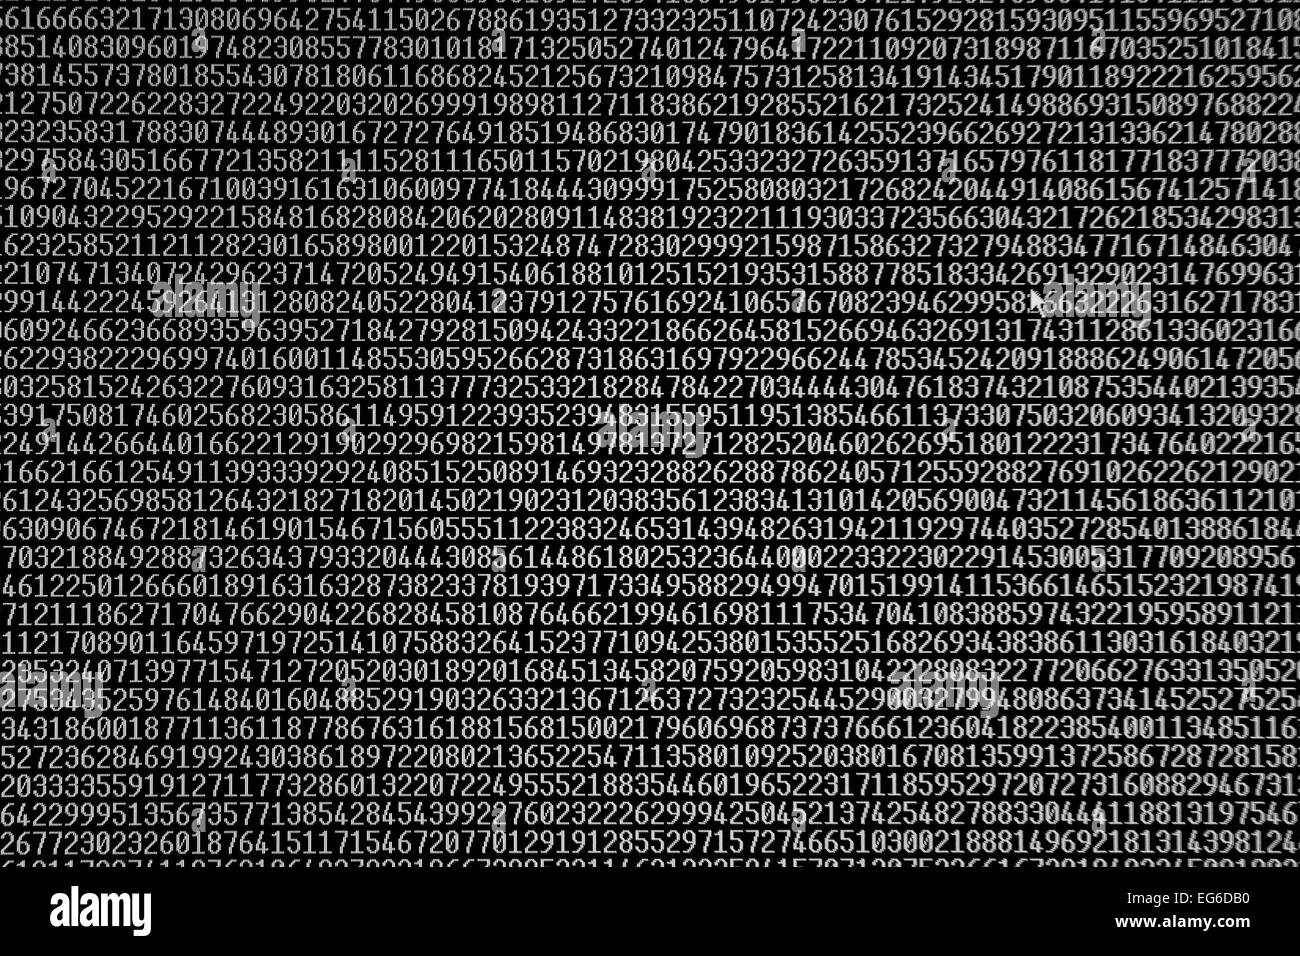 Random numbers on a computer monitor - Stock Image